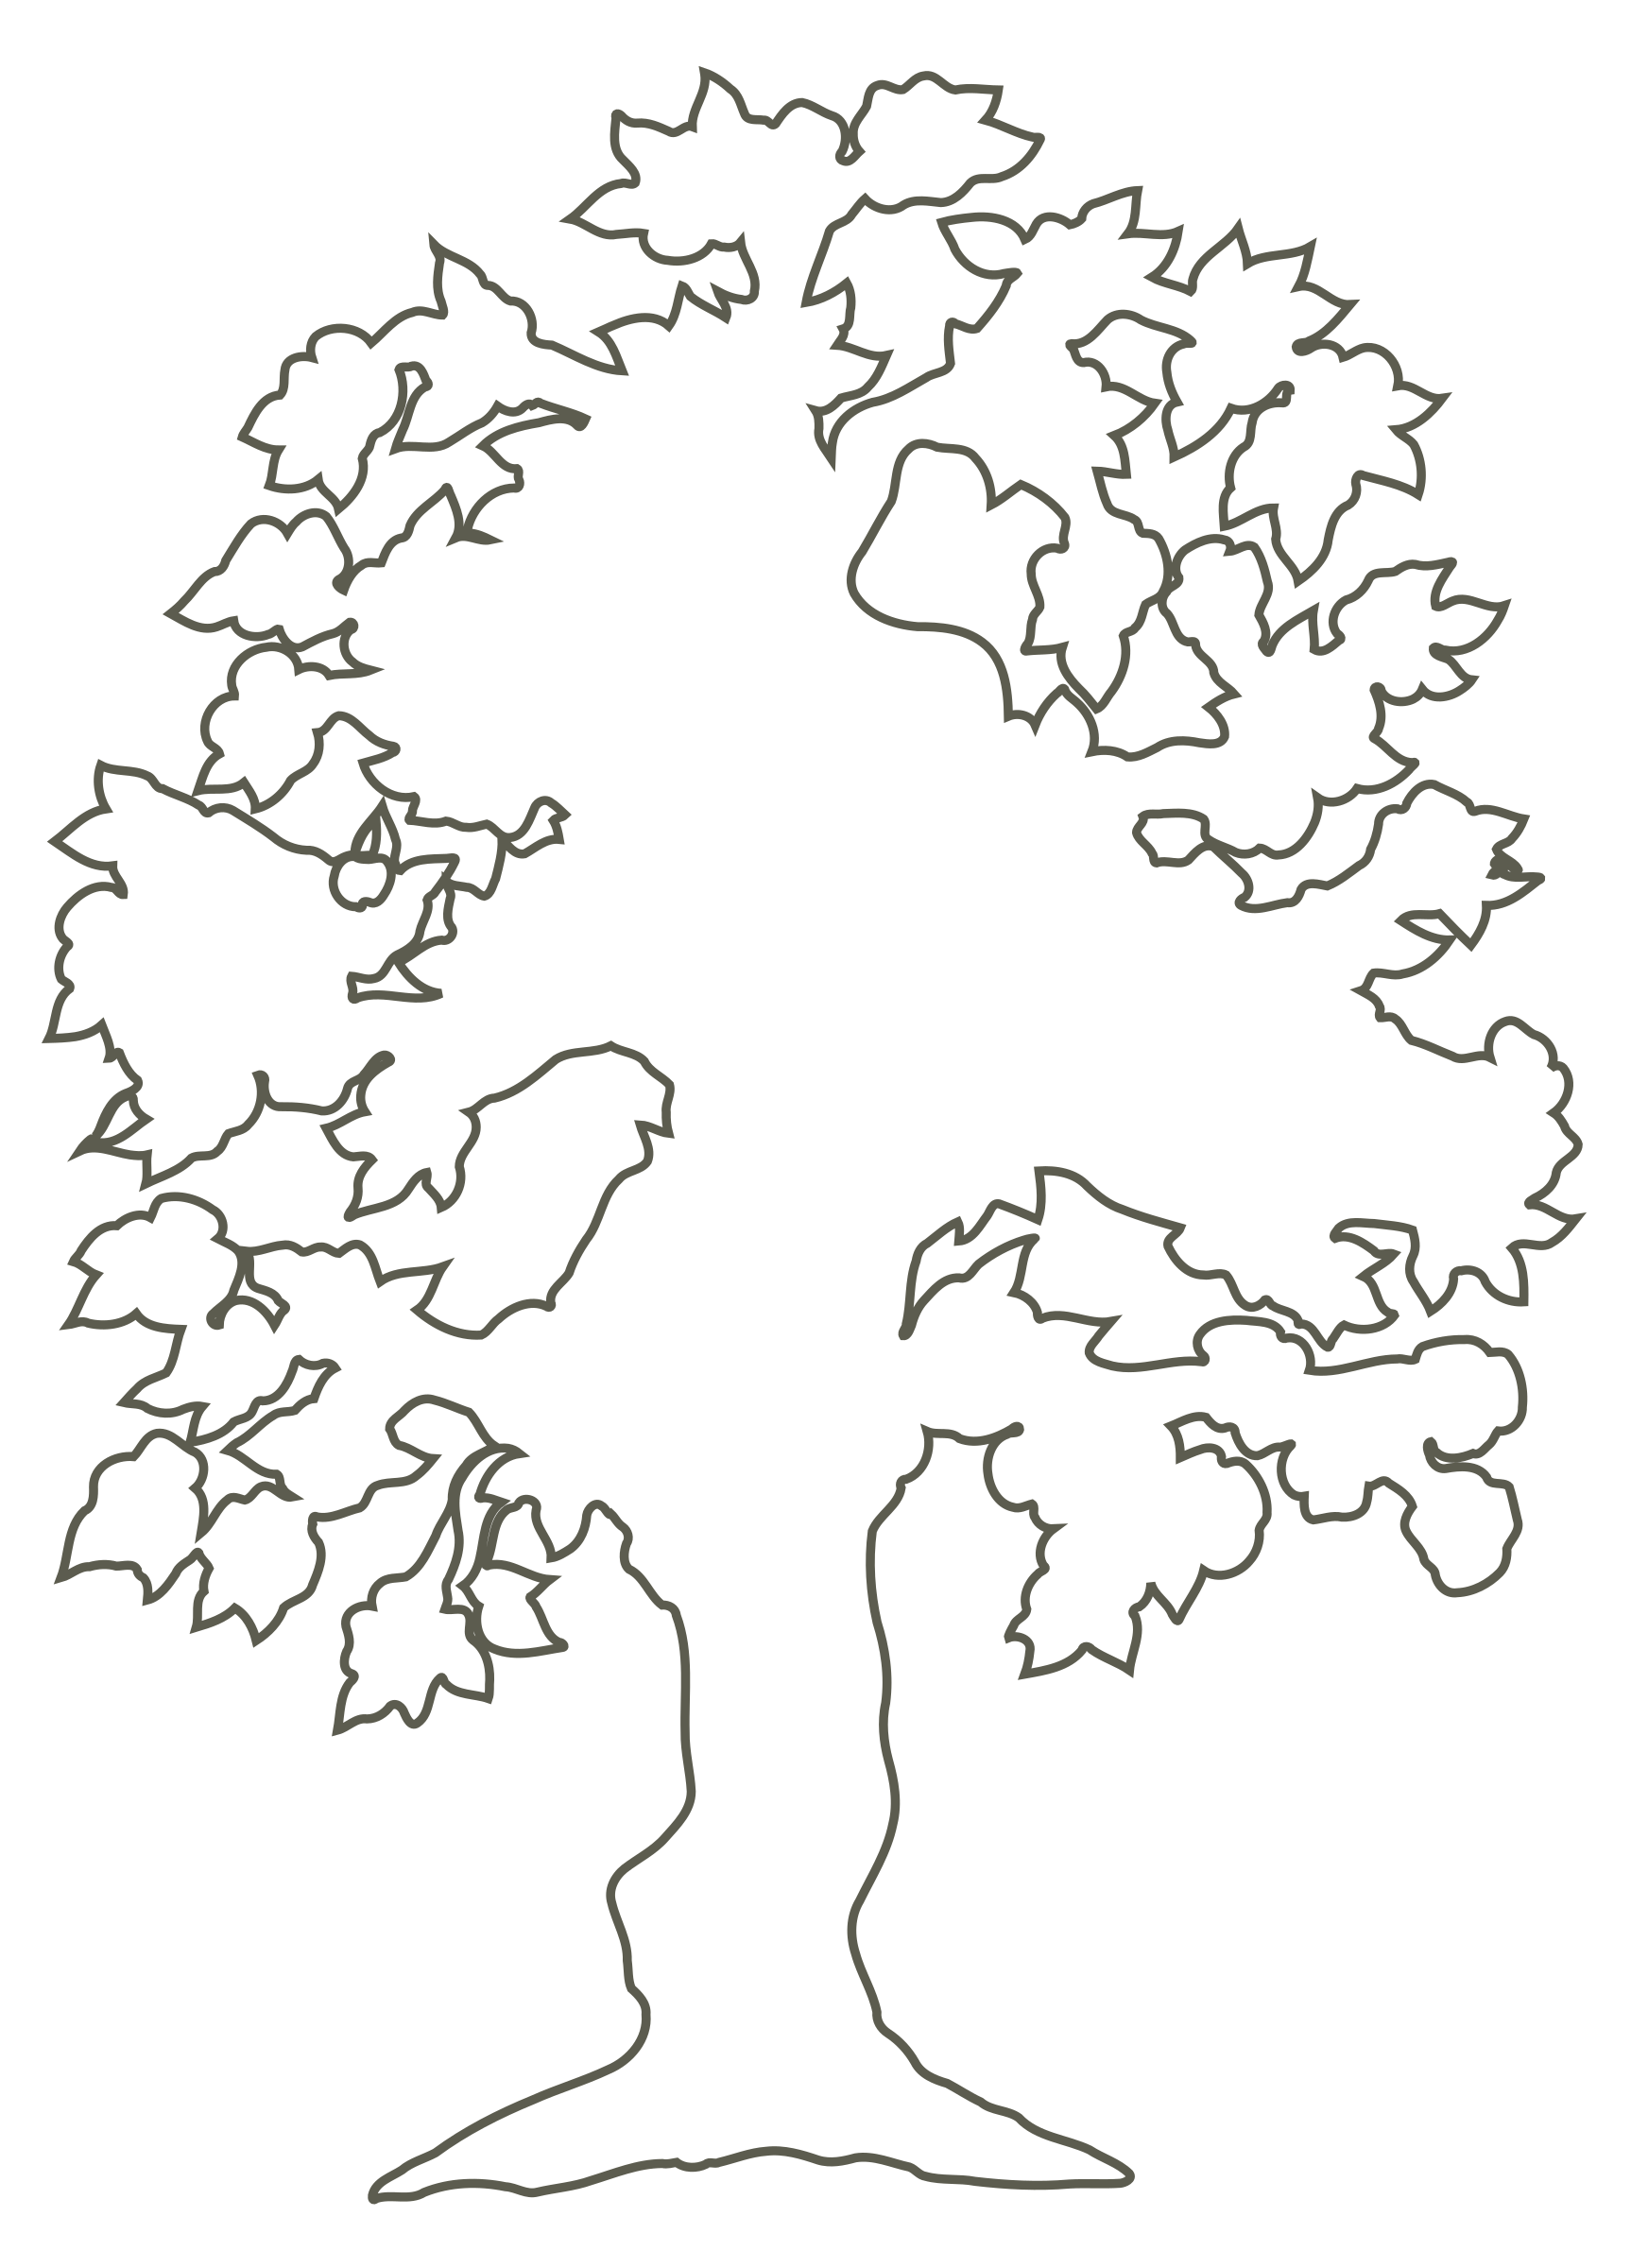 Oak tree clipart free banner transparent download Oak Tree Clip Art Silhouette at GetDrawings.com | Free for personal ... banner transparent download